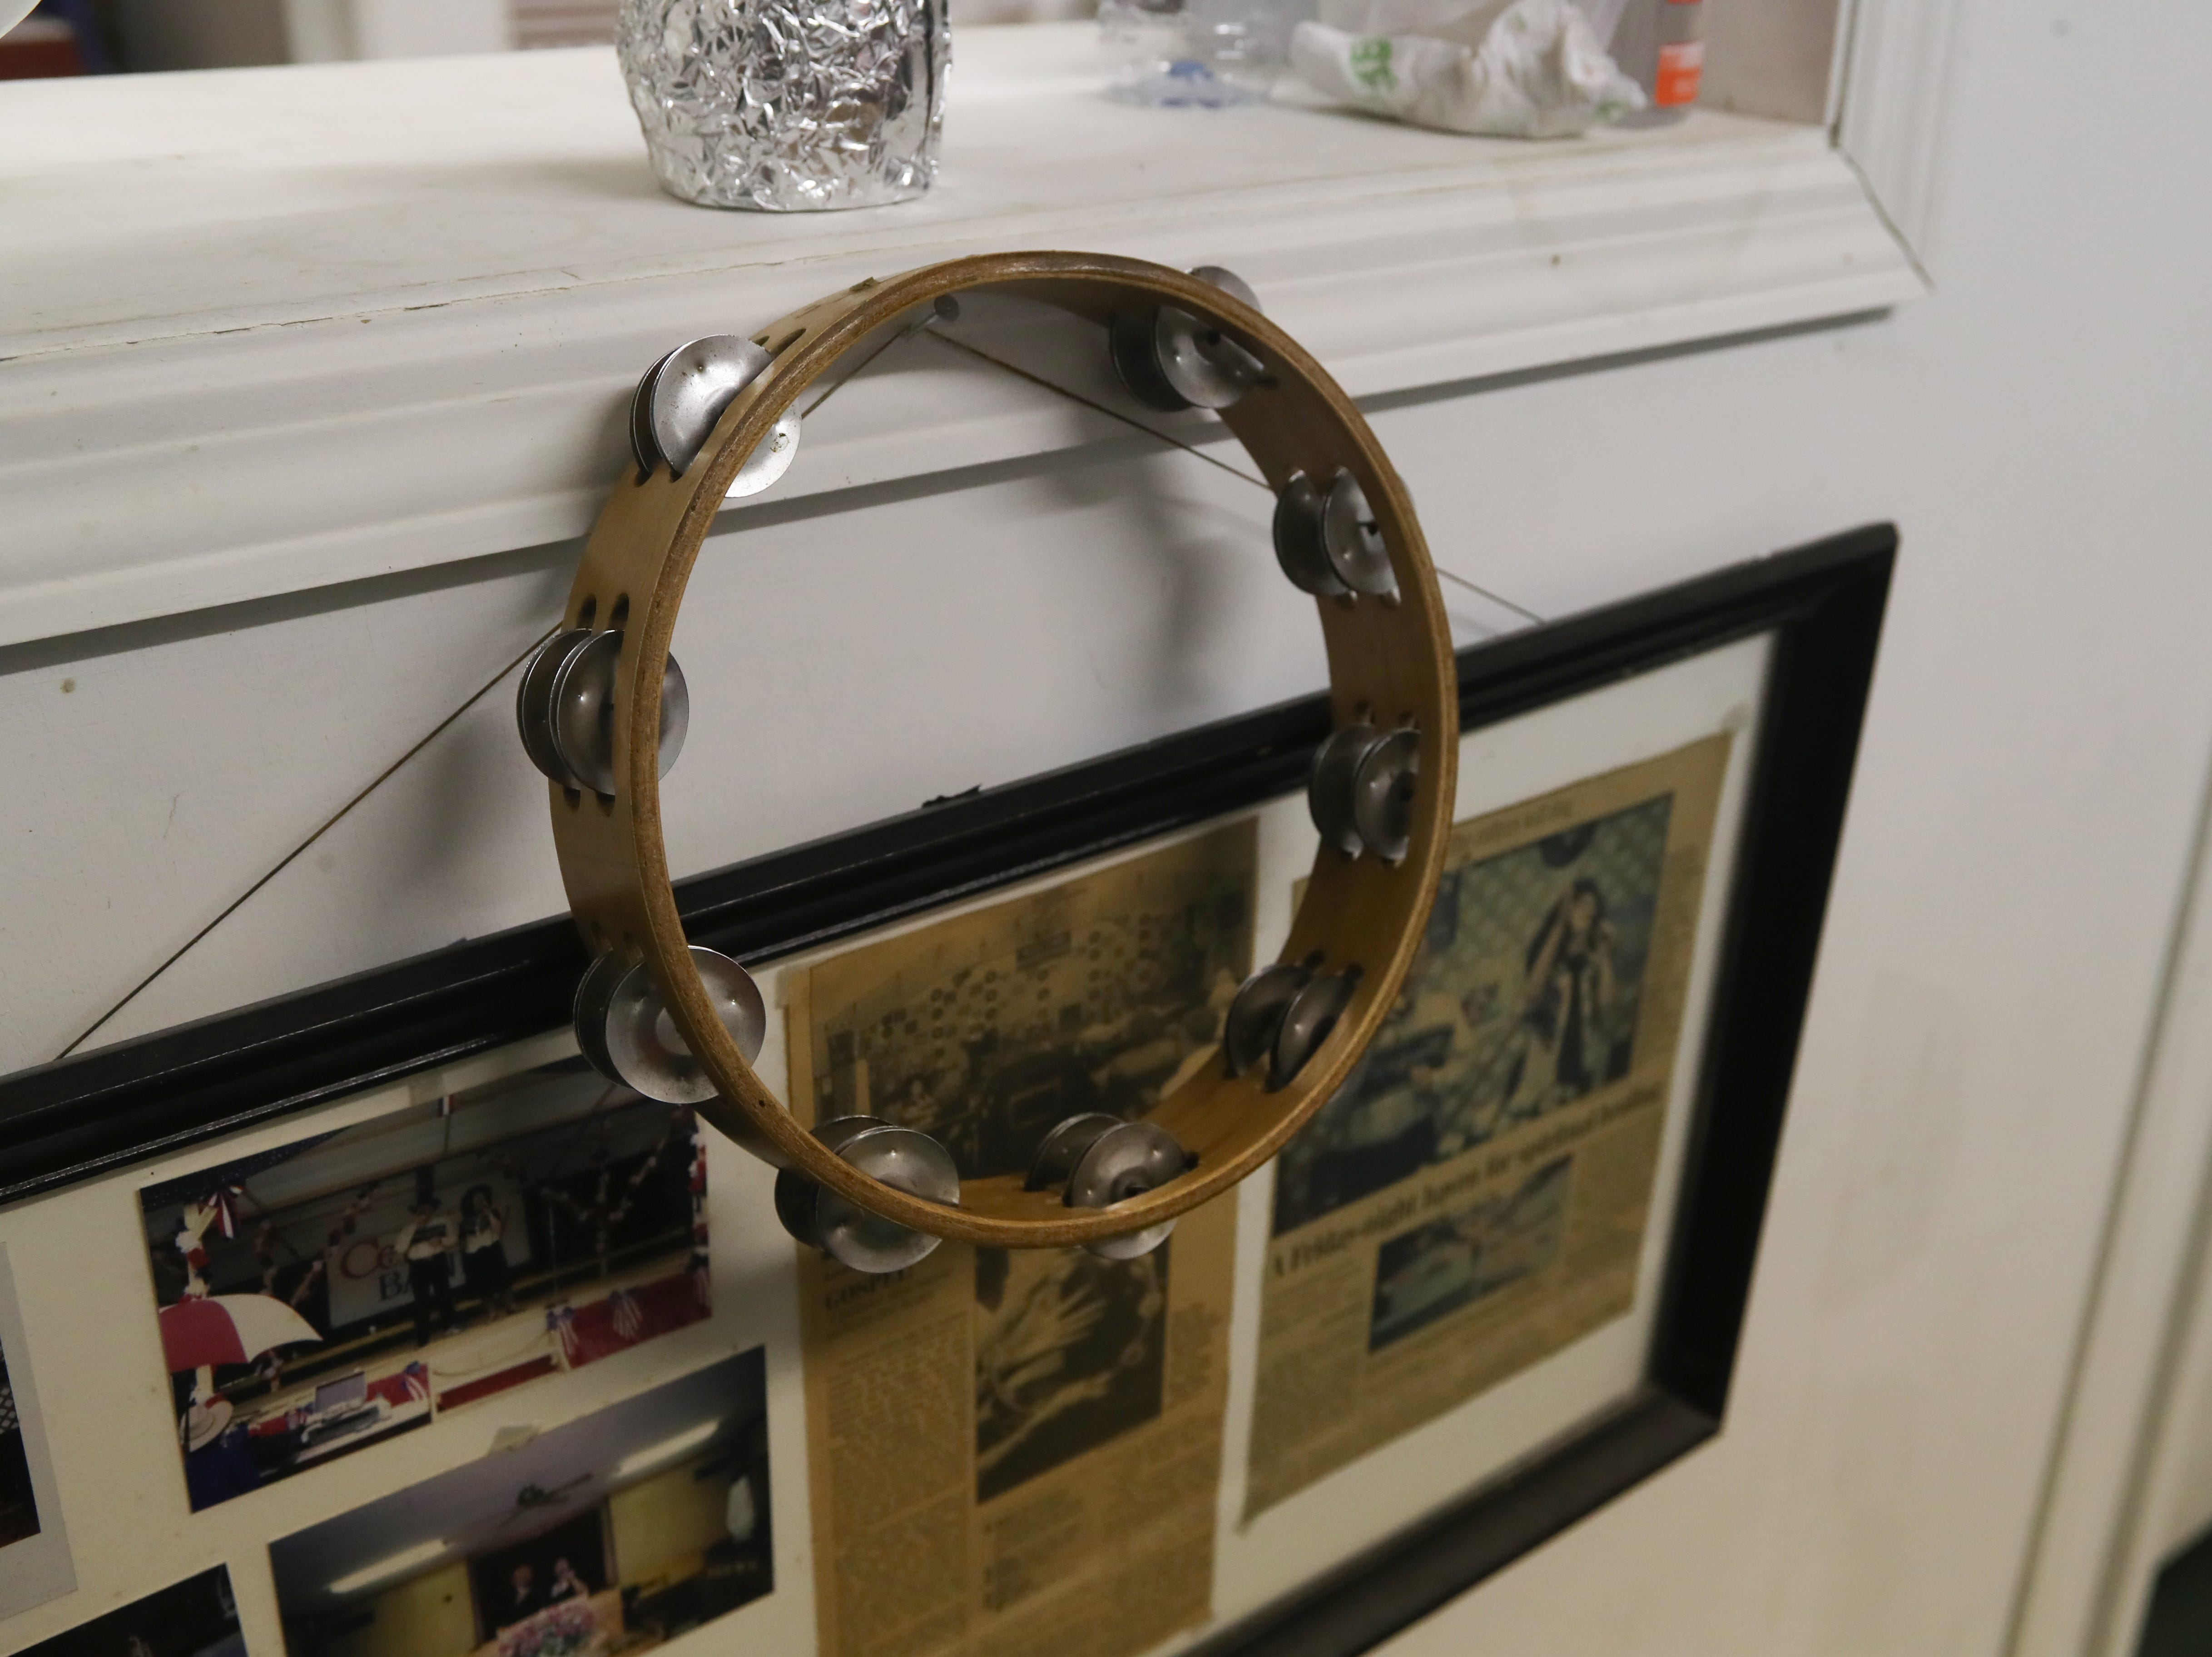 A tambourine used by Bobby Key's sister during the first service at Ole Gospel Tabernacle Church hangs in the back of the church during the last gospel sing service held there Friday, March 8, 2019.